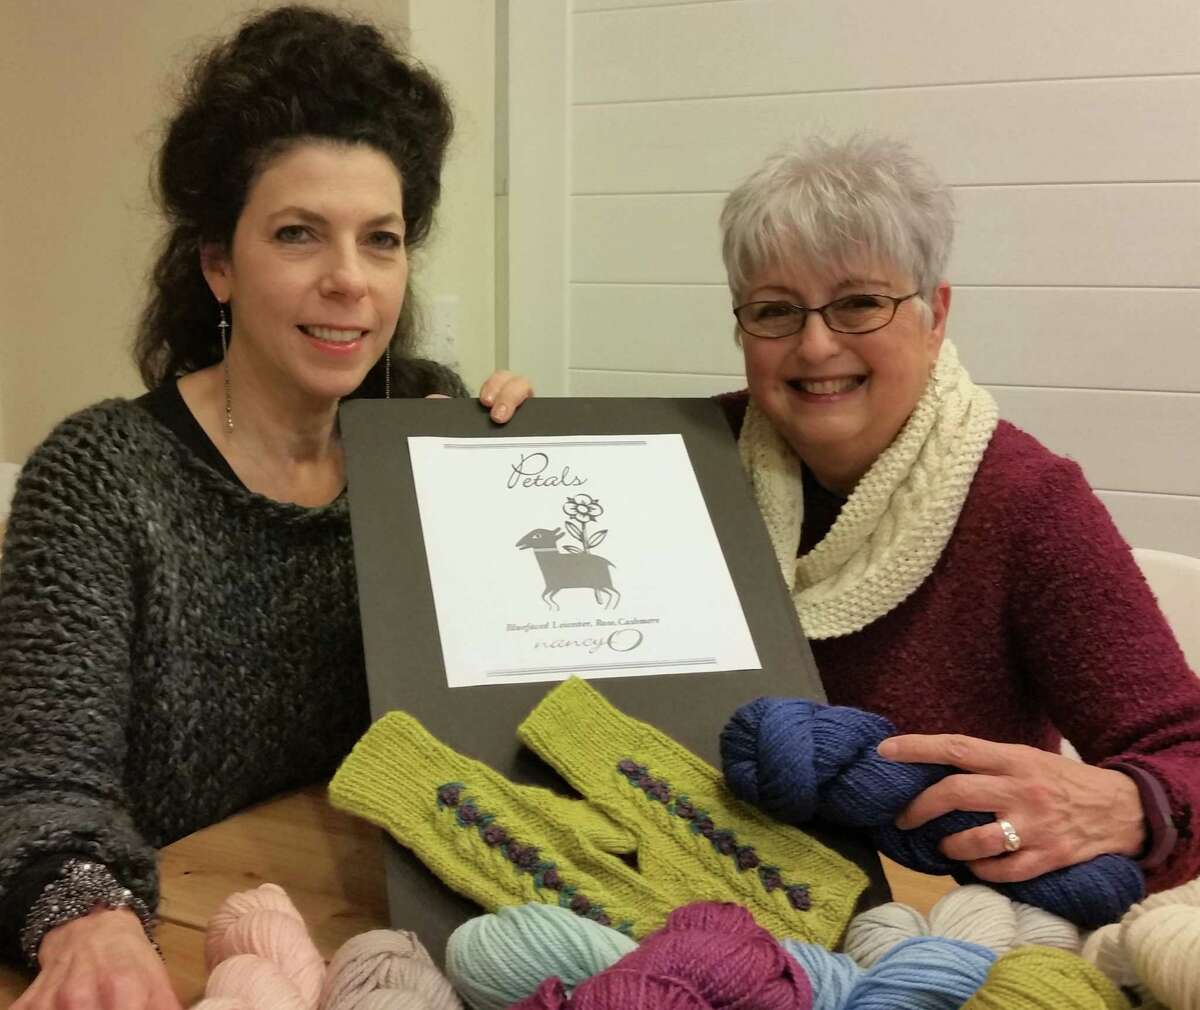 Nancy O'Connell, right, owner of nancy O, with Ridgefield artist Amy Bock, who designed the labels for the nancy O private-label yarns. Shown is a replica of the label for one of the two new yarns.